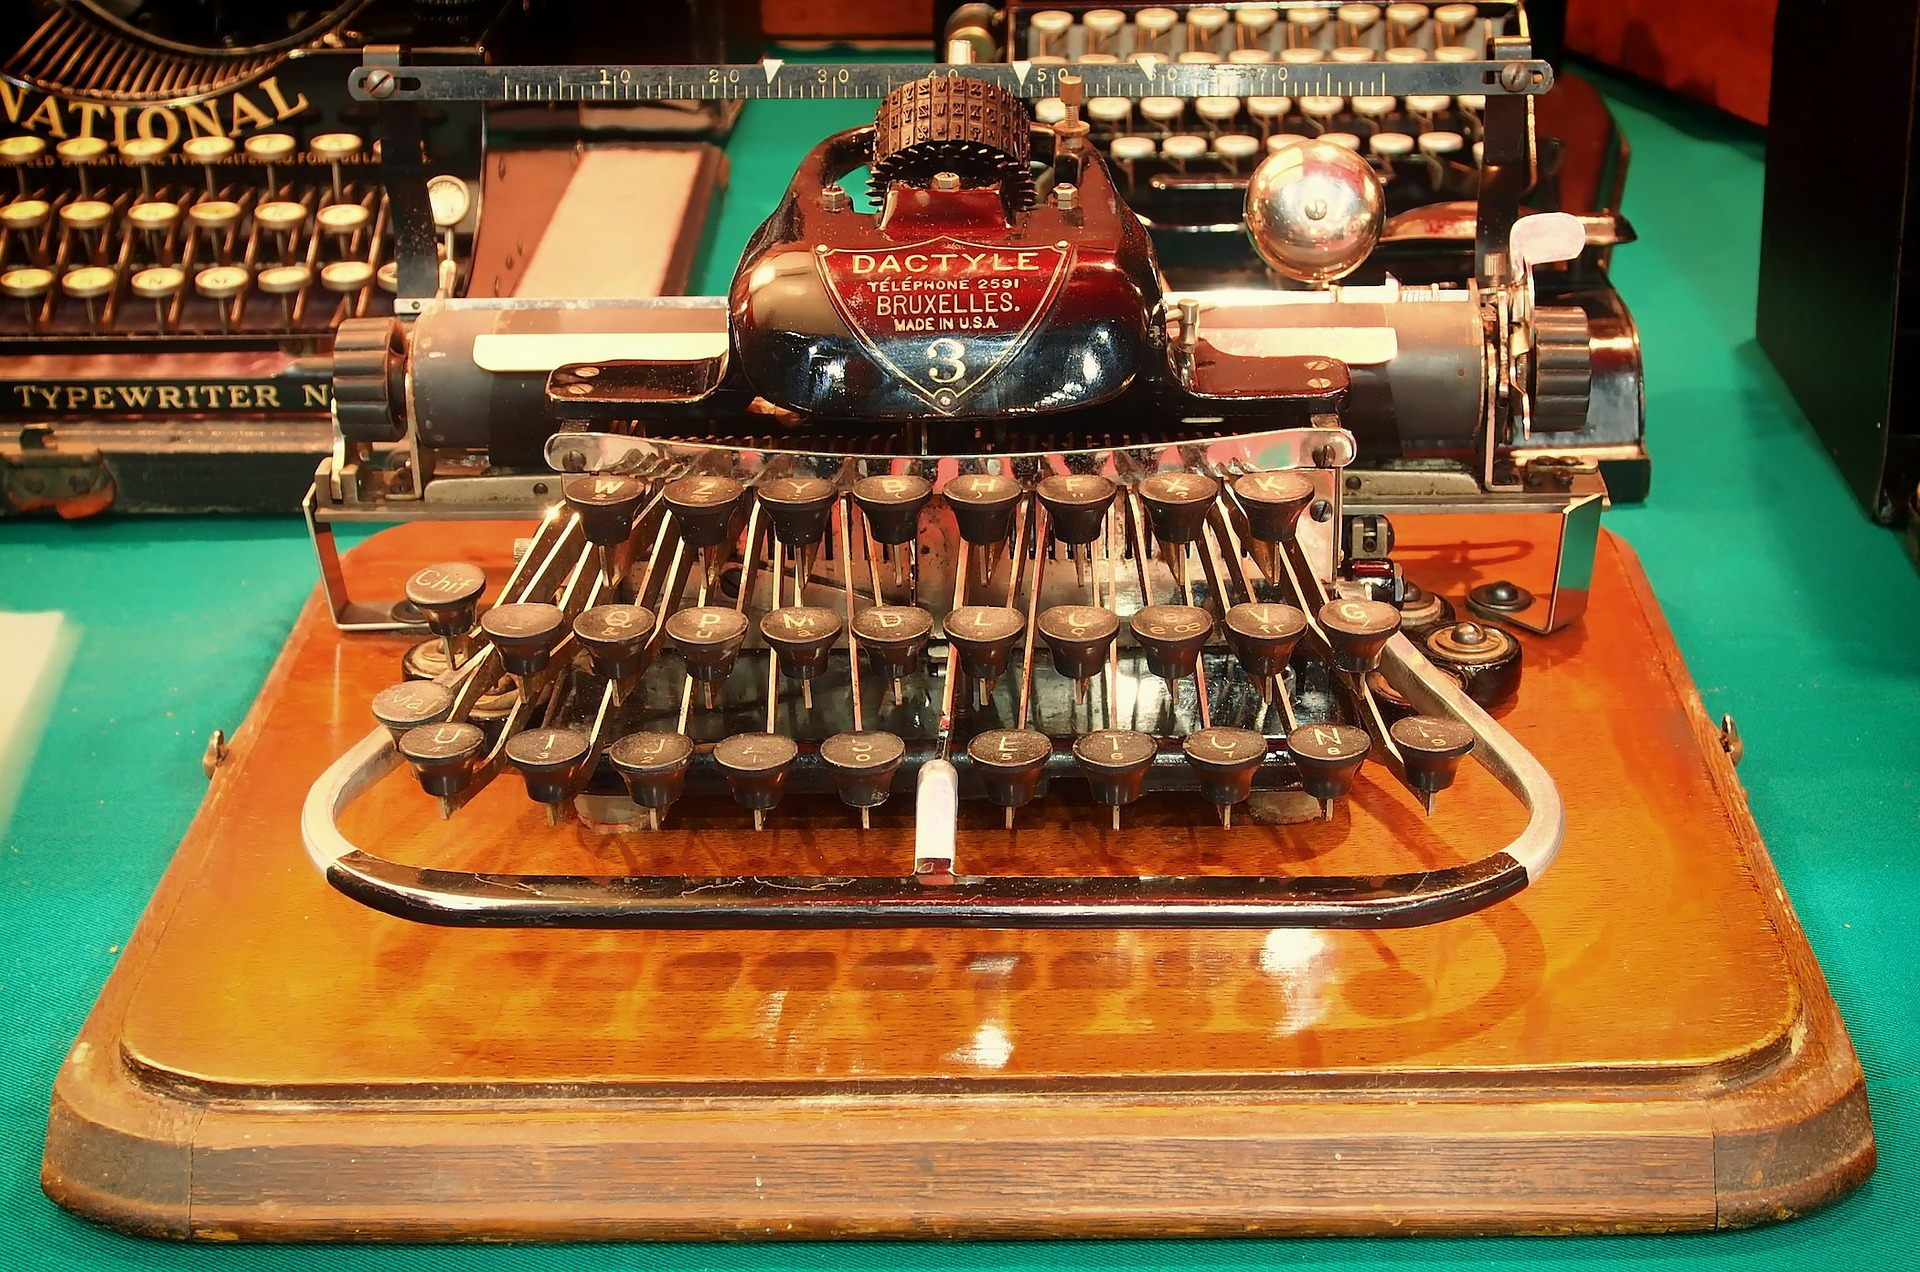 typewriters-345699_1920.jpg